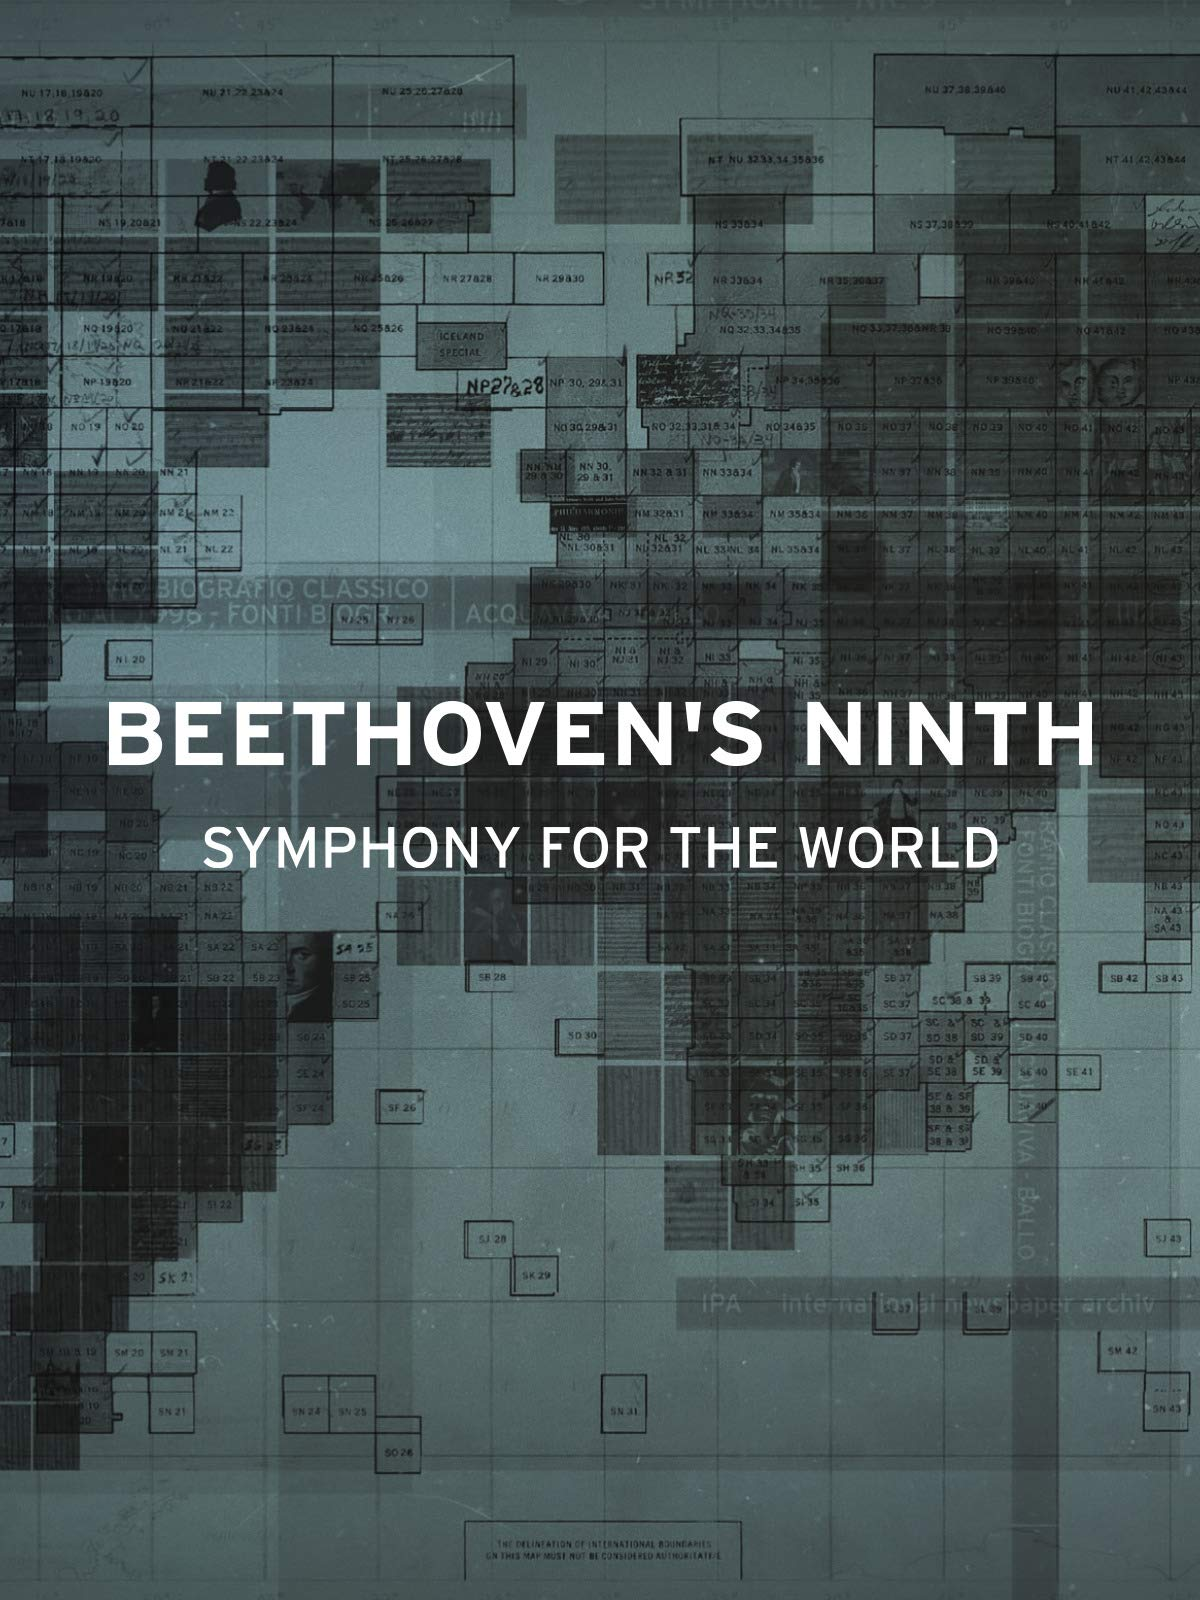 Beethoven's Ninth - Symphony for the World